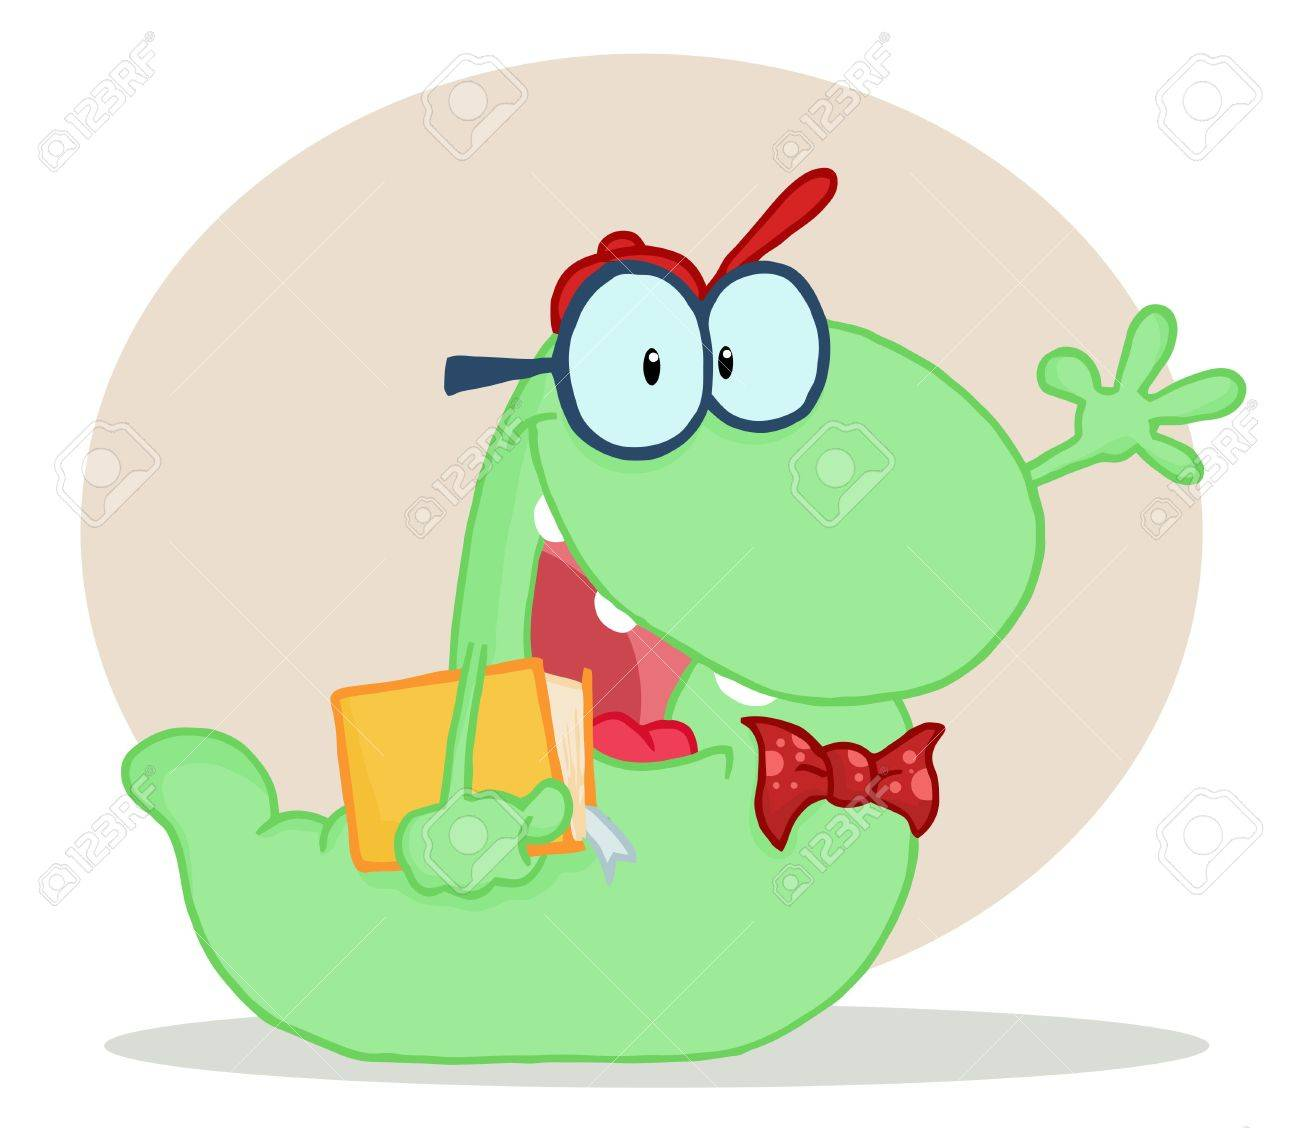 Friendly Green School Worm Student Waving And Carrying A Book, With A Beige Circle And Shadow Stock Vector - 6905967